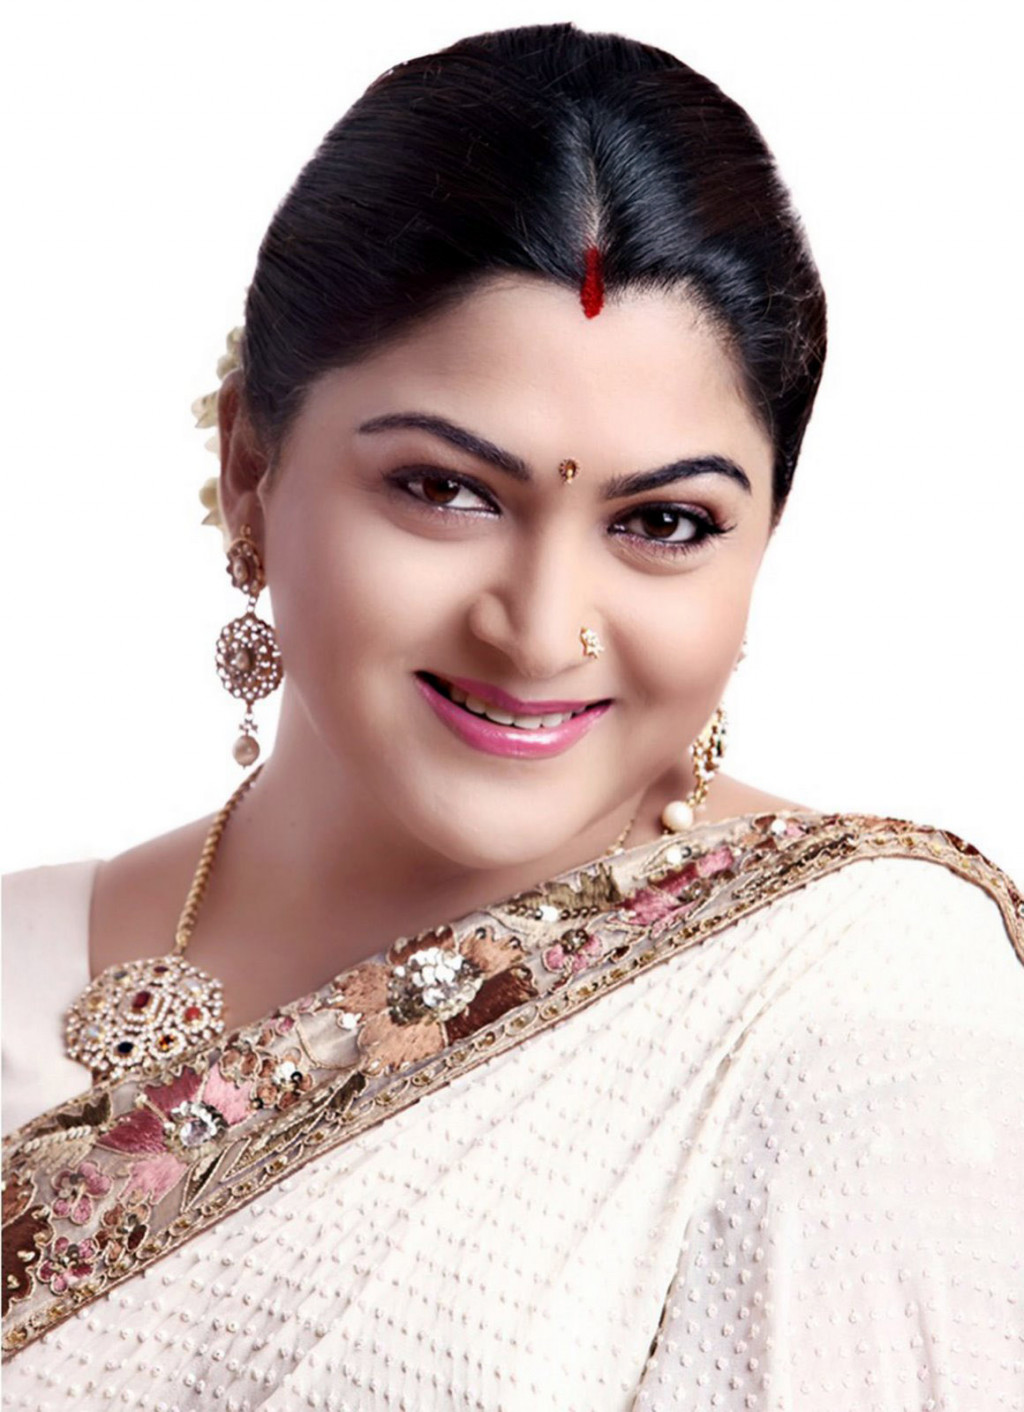 Kushboo Hot South Indian Tamil Movie Actress  Hubpages-3961